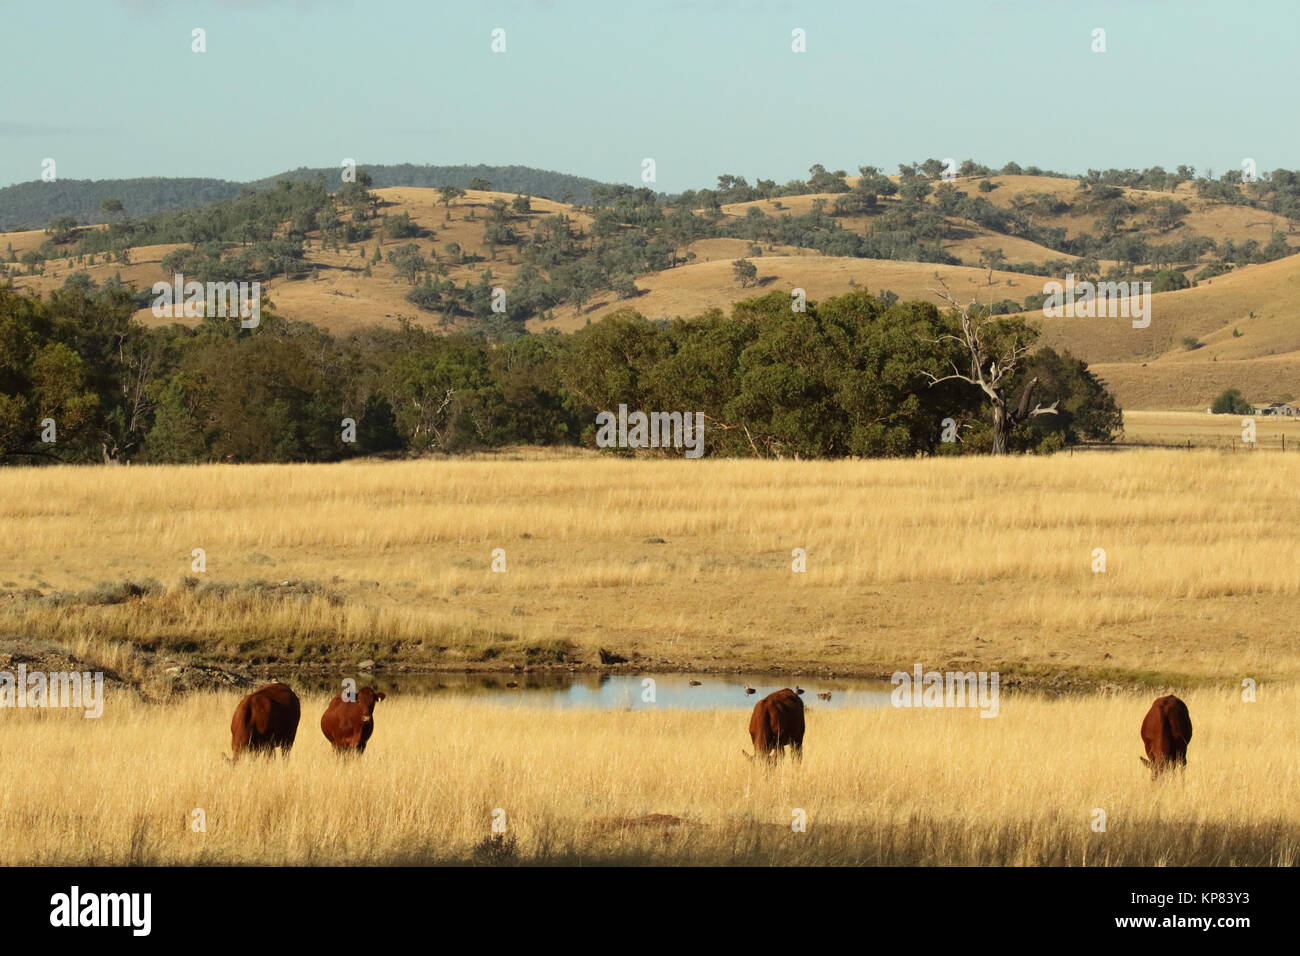 Cattle grazing near a watering hole in Sundown National Park. - Stock Image